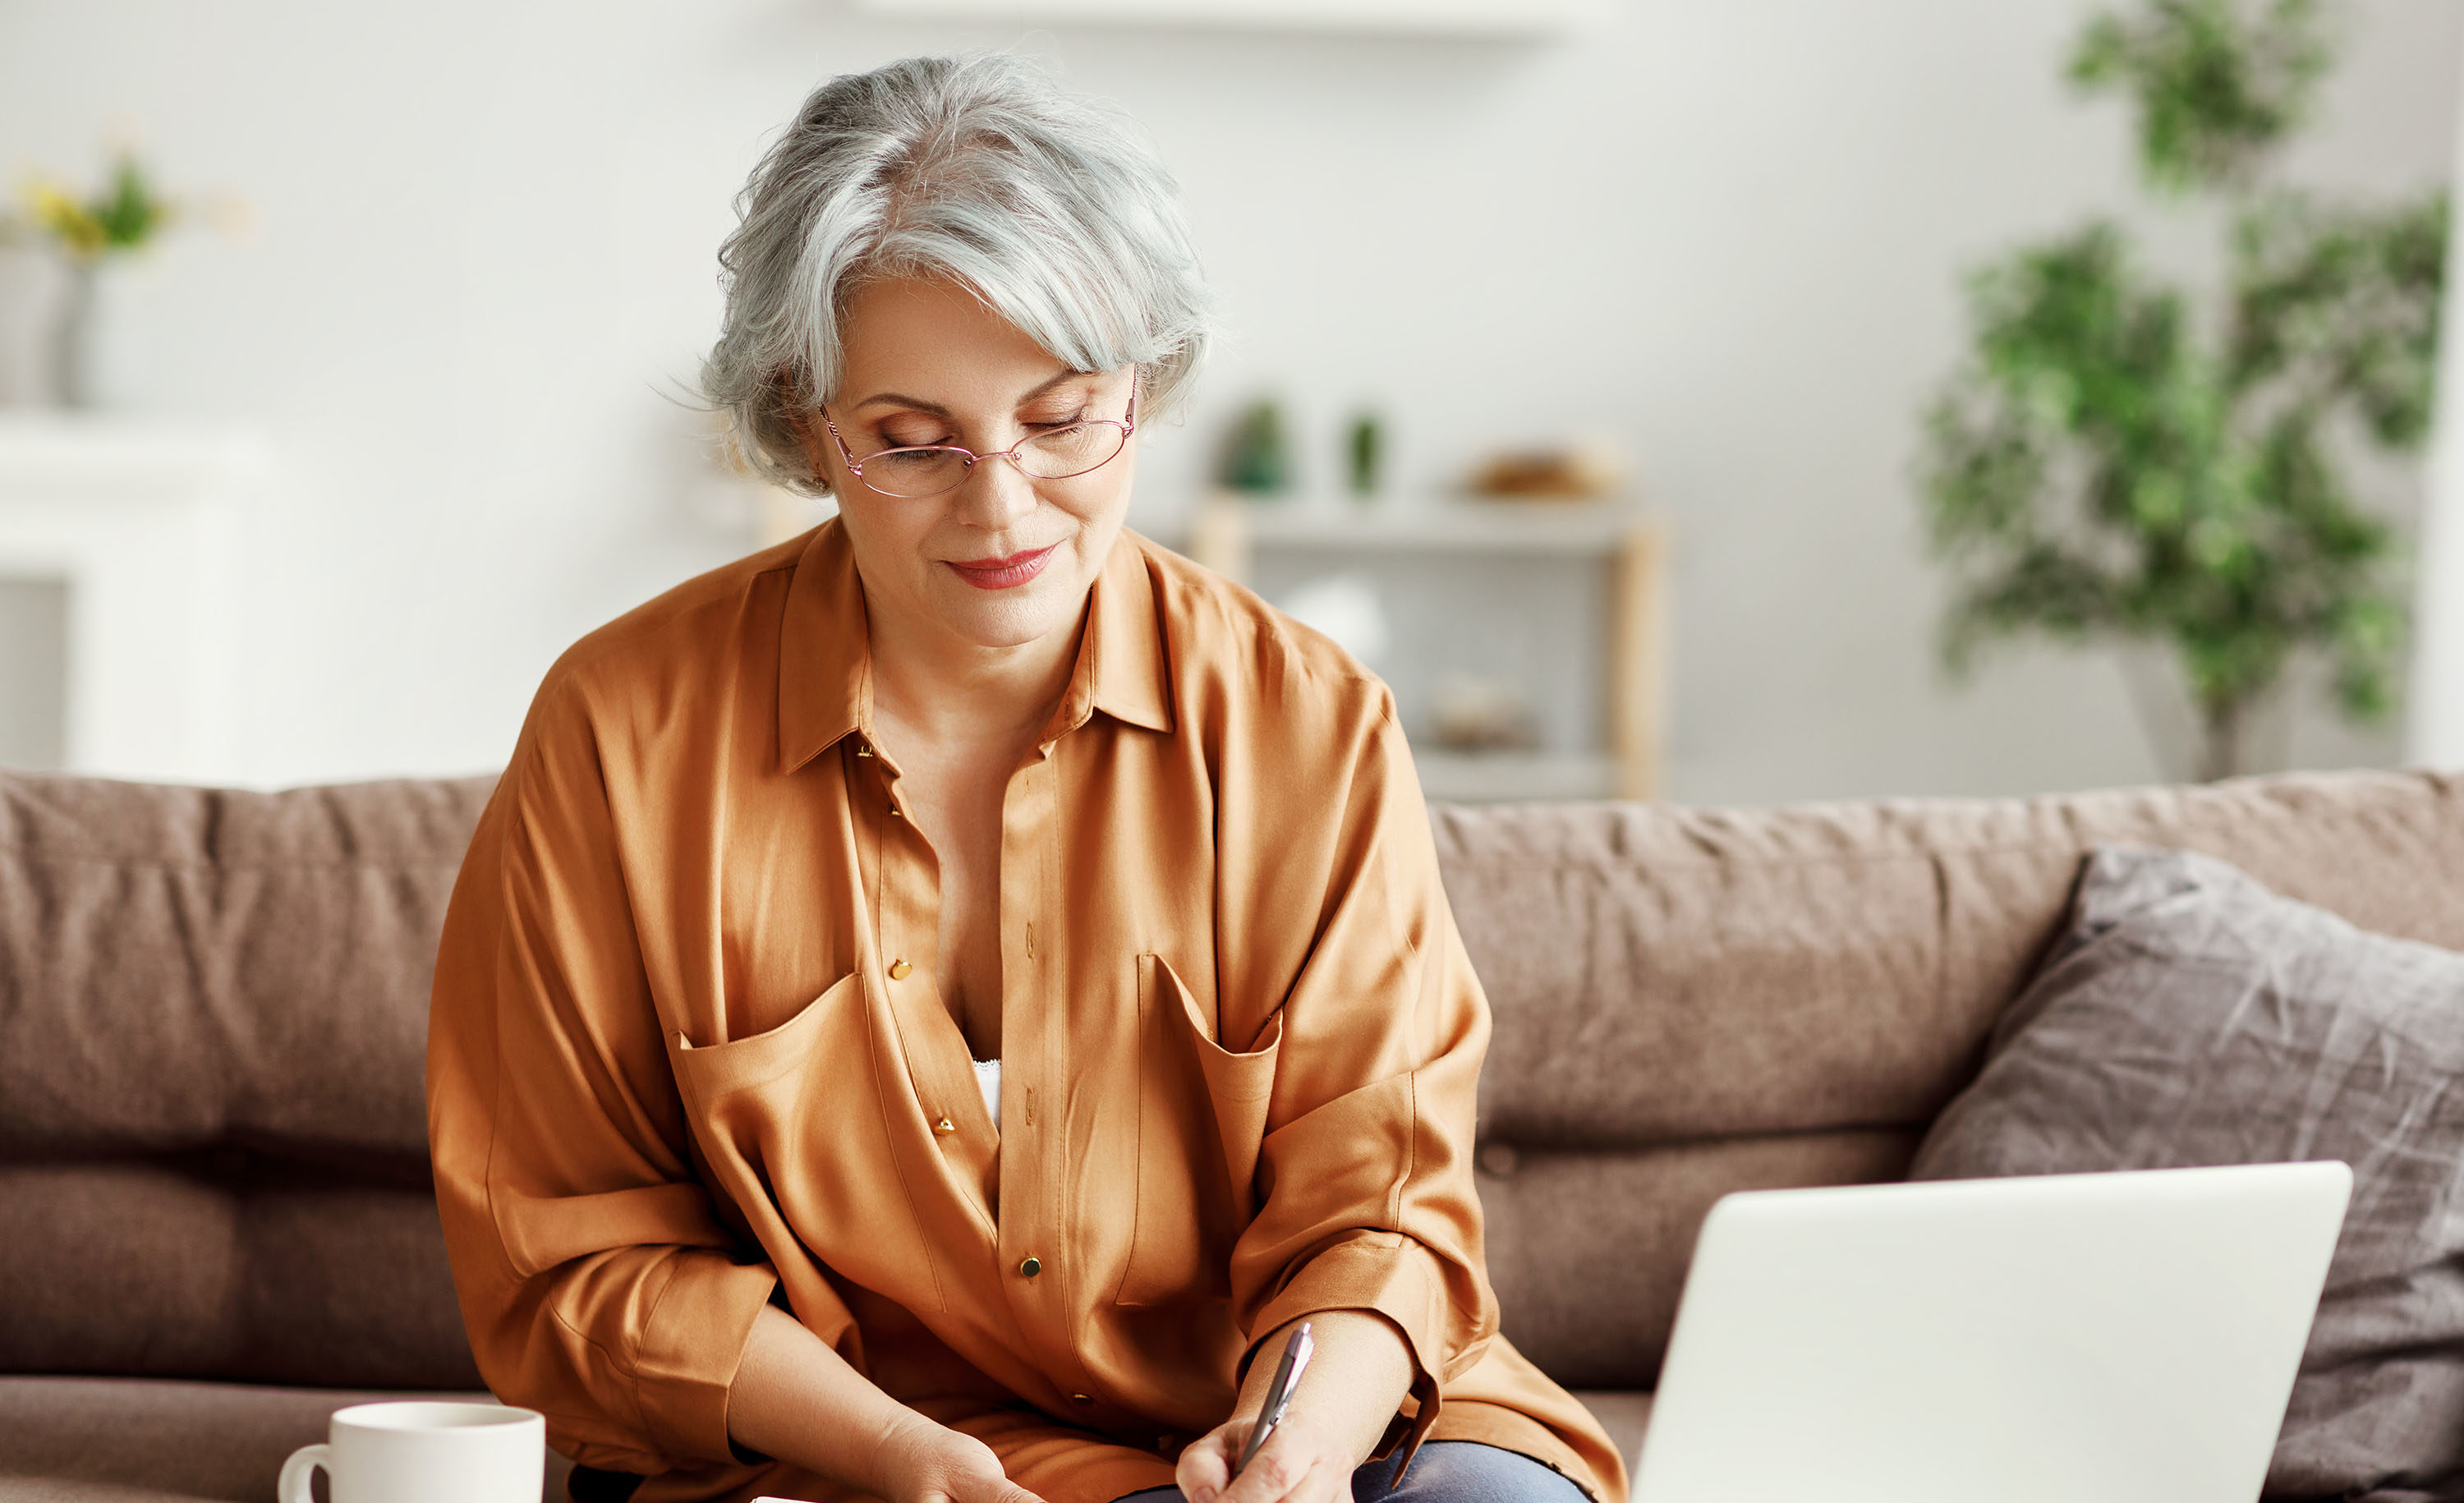 Retiring soon? Recent law changes may have an impact on your retirement savings